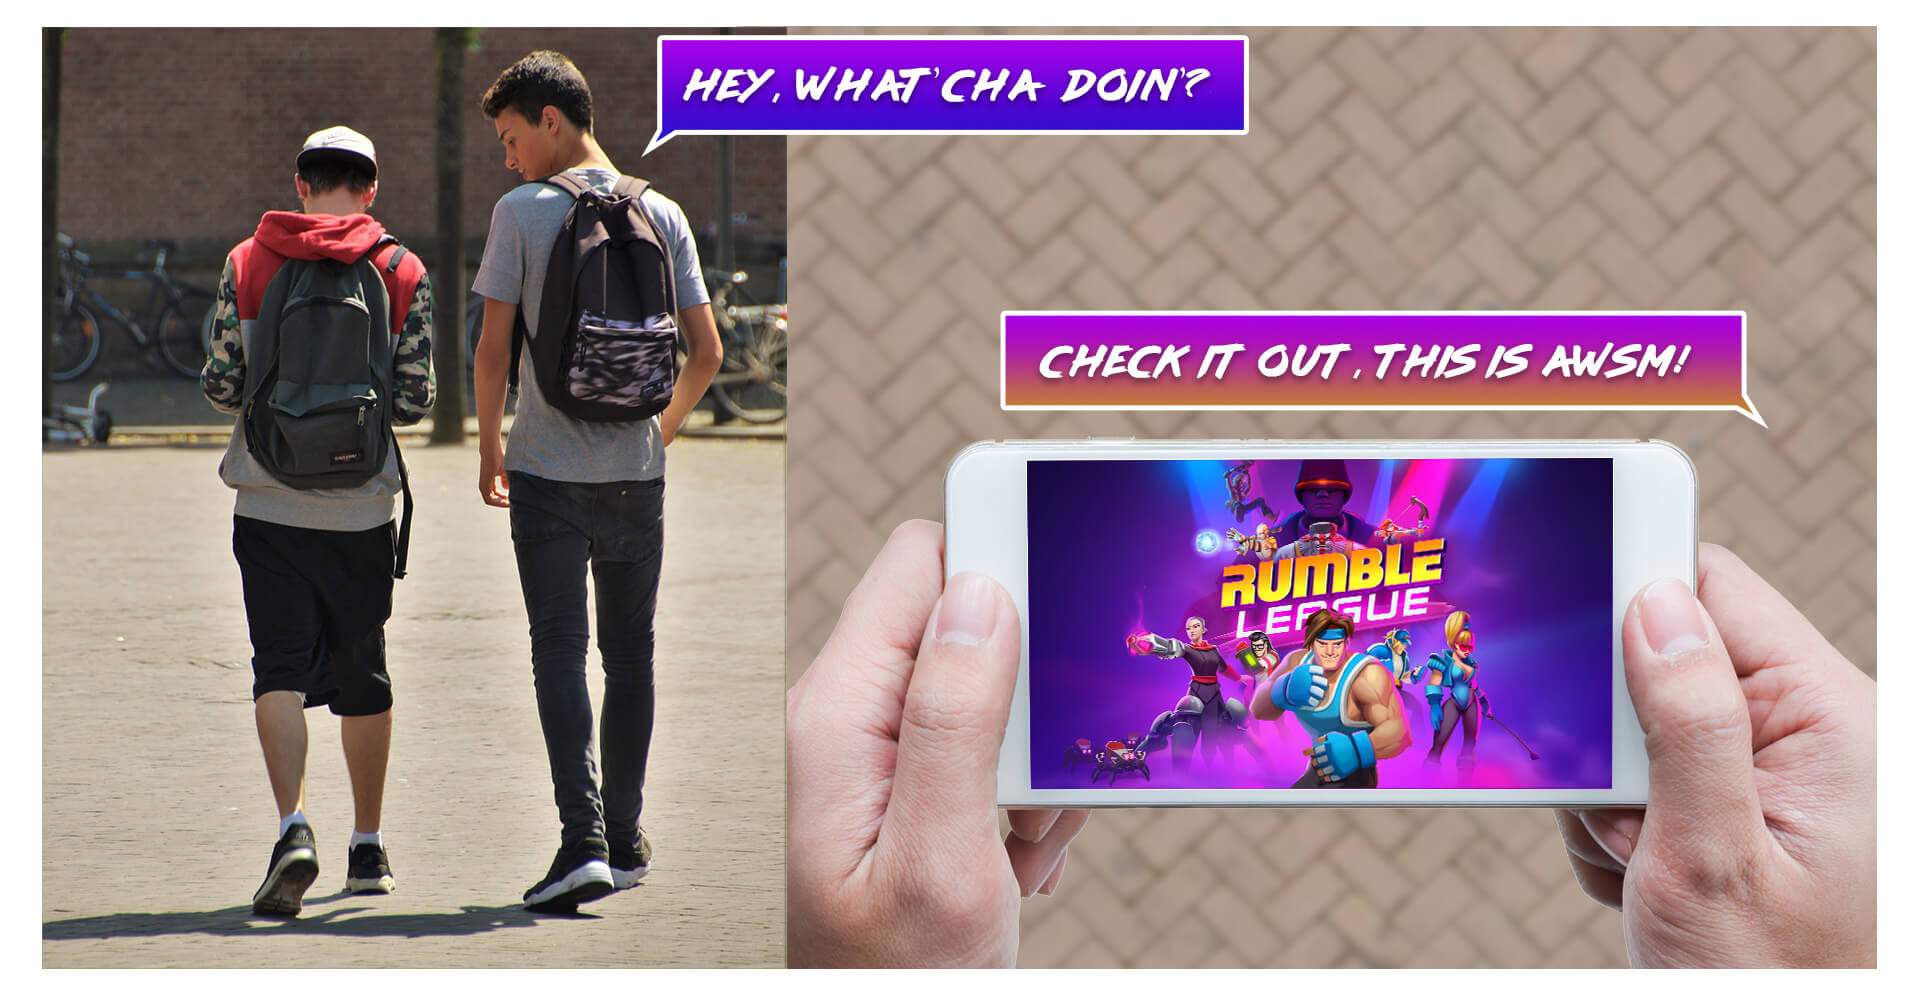 Kids Playing Rumble League on mobile phone